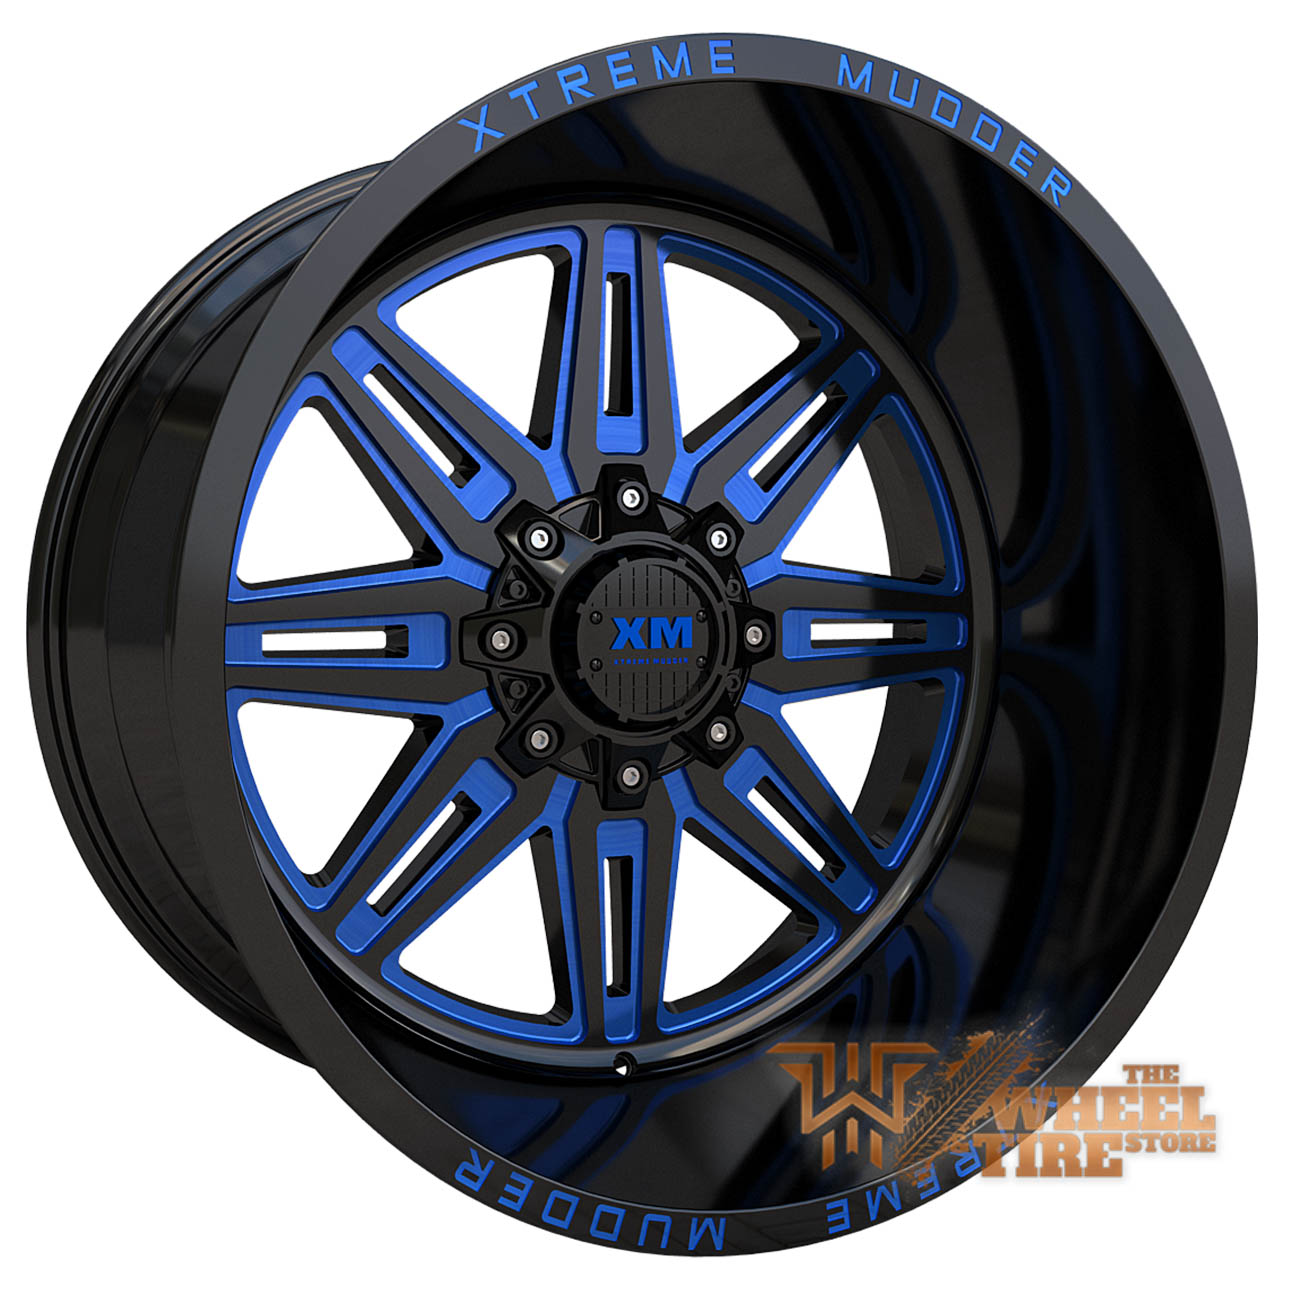 XTREME MUDDER XM-341 Wheel in Gloss Black Blue Milled